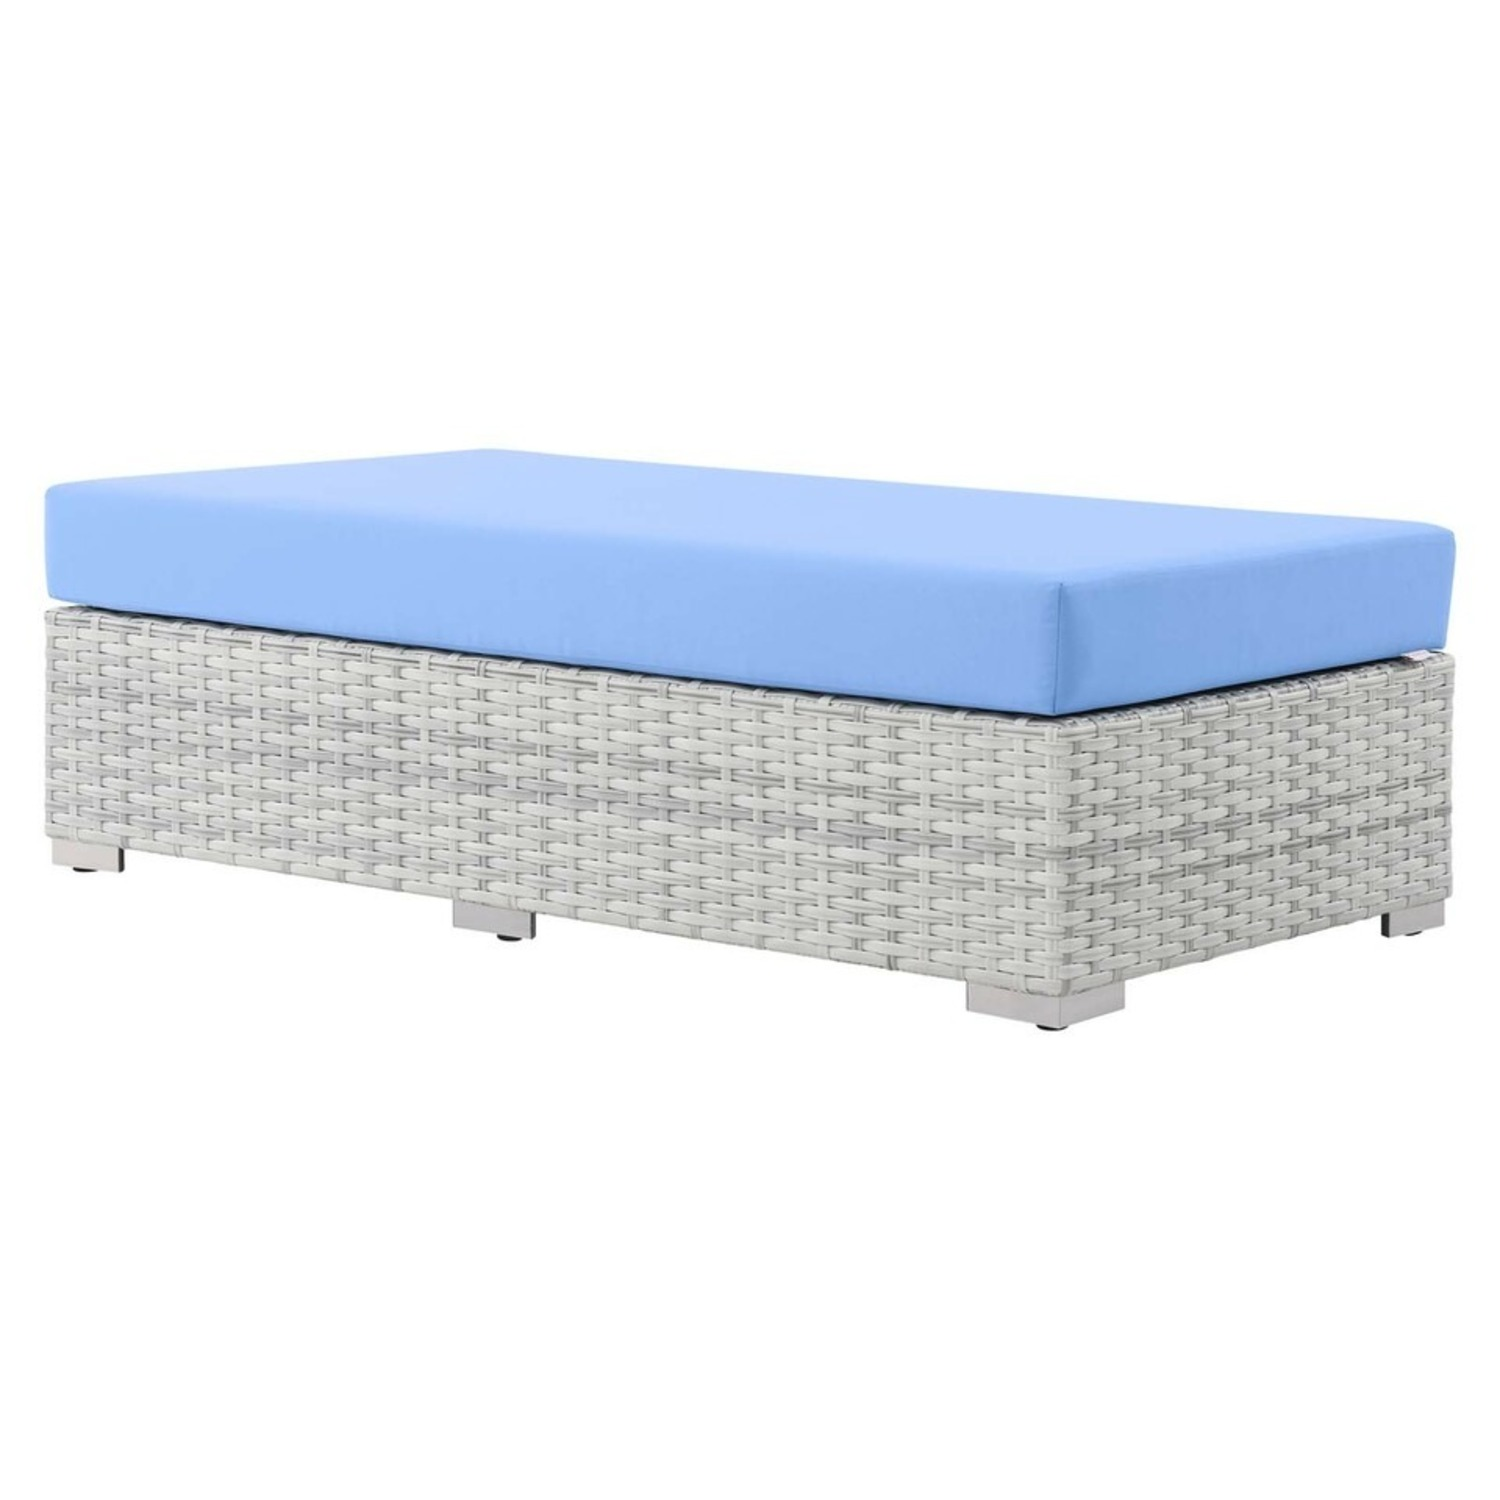 6-Piece Outdoor Patio Sectional In Light Blue Seat - image-12